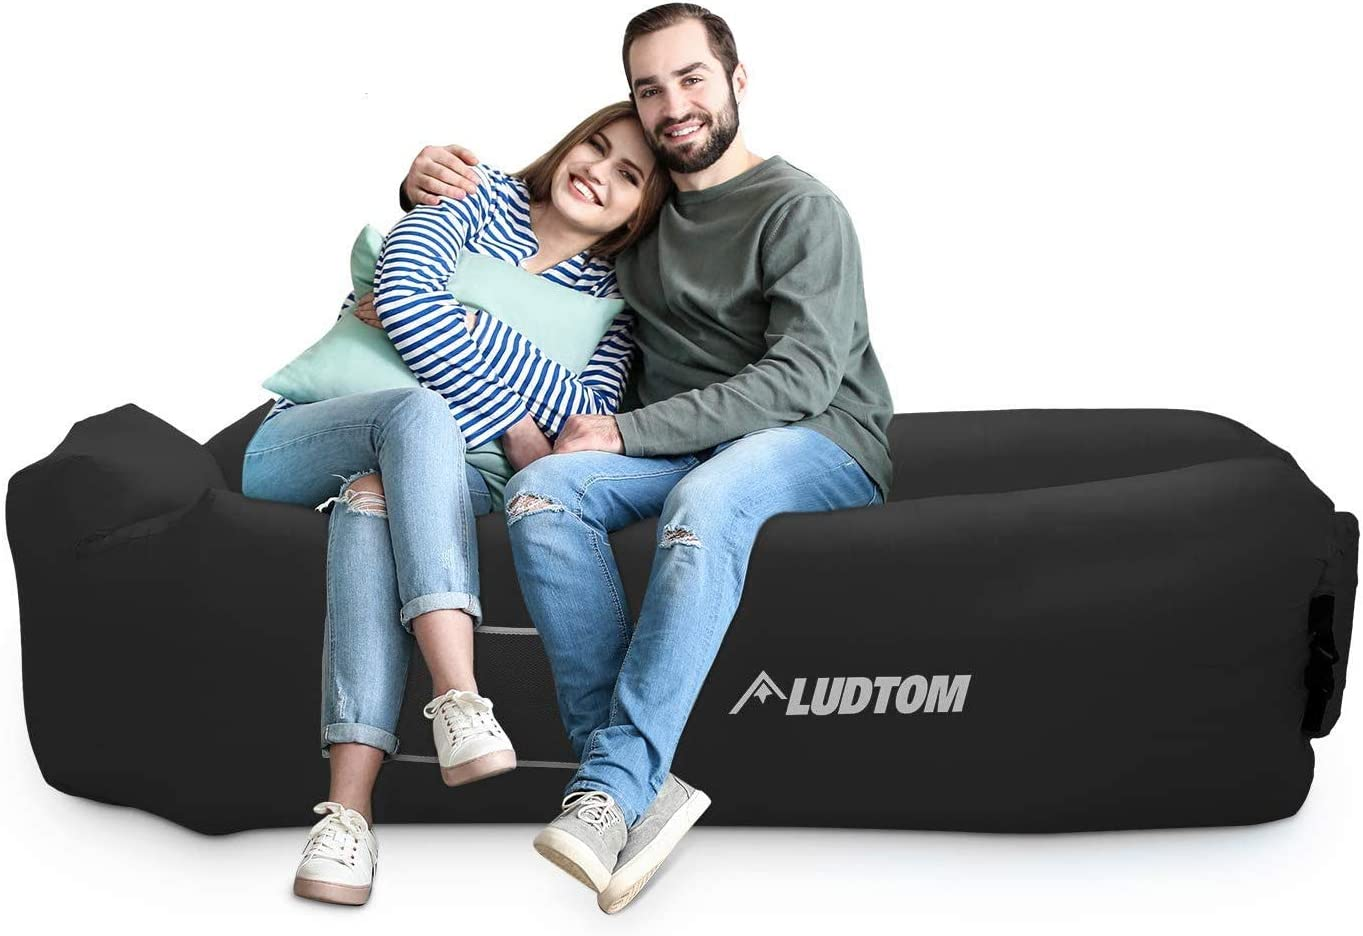 Ludtom Inflatable Air Lounger